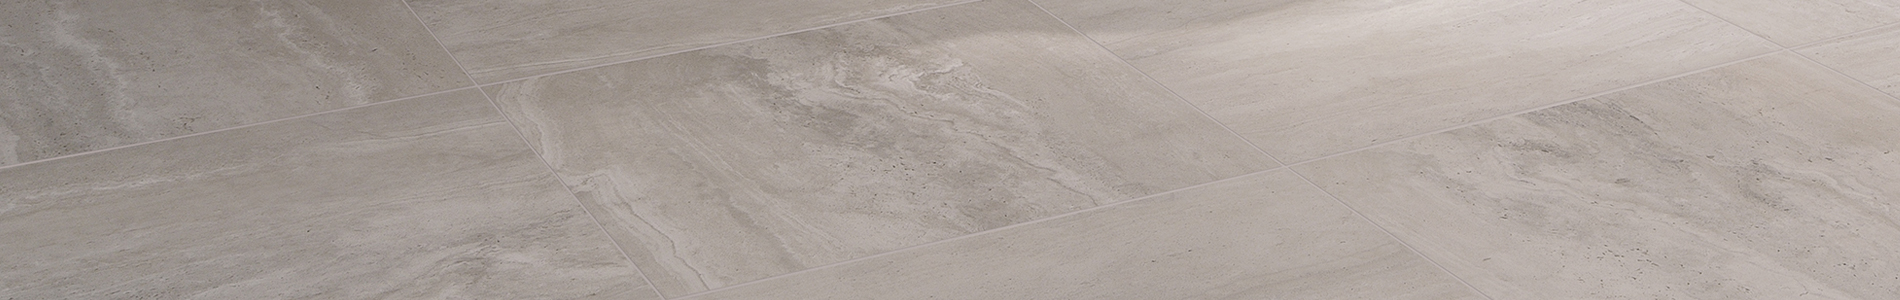 Travertine Grey Paving Primaporcelain